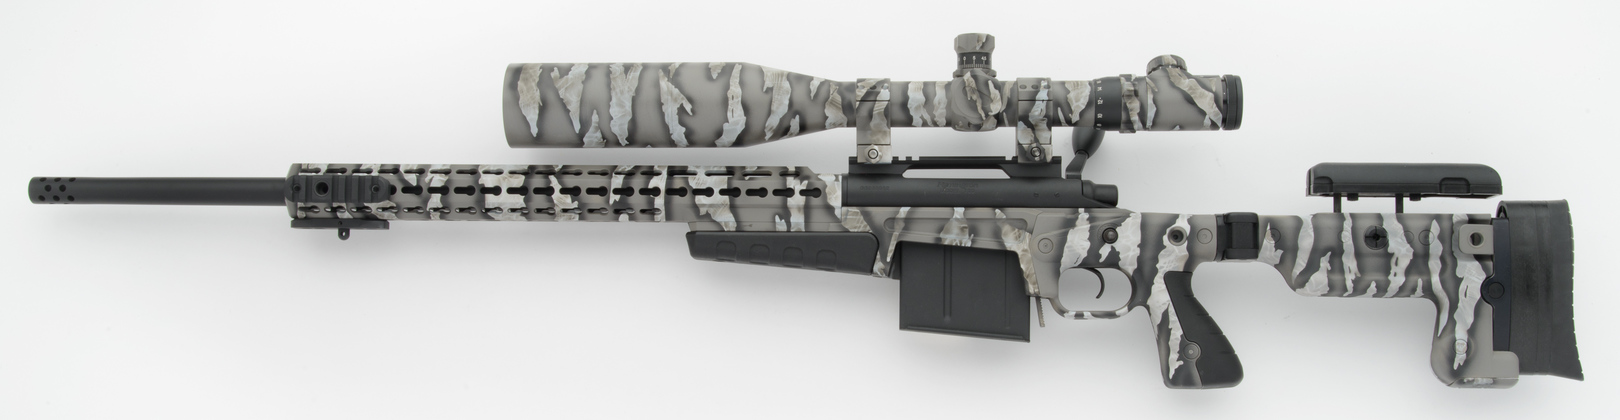 Zephyr Warrior Rifle